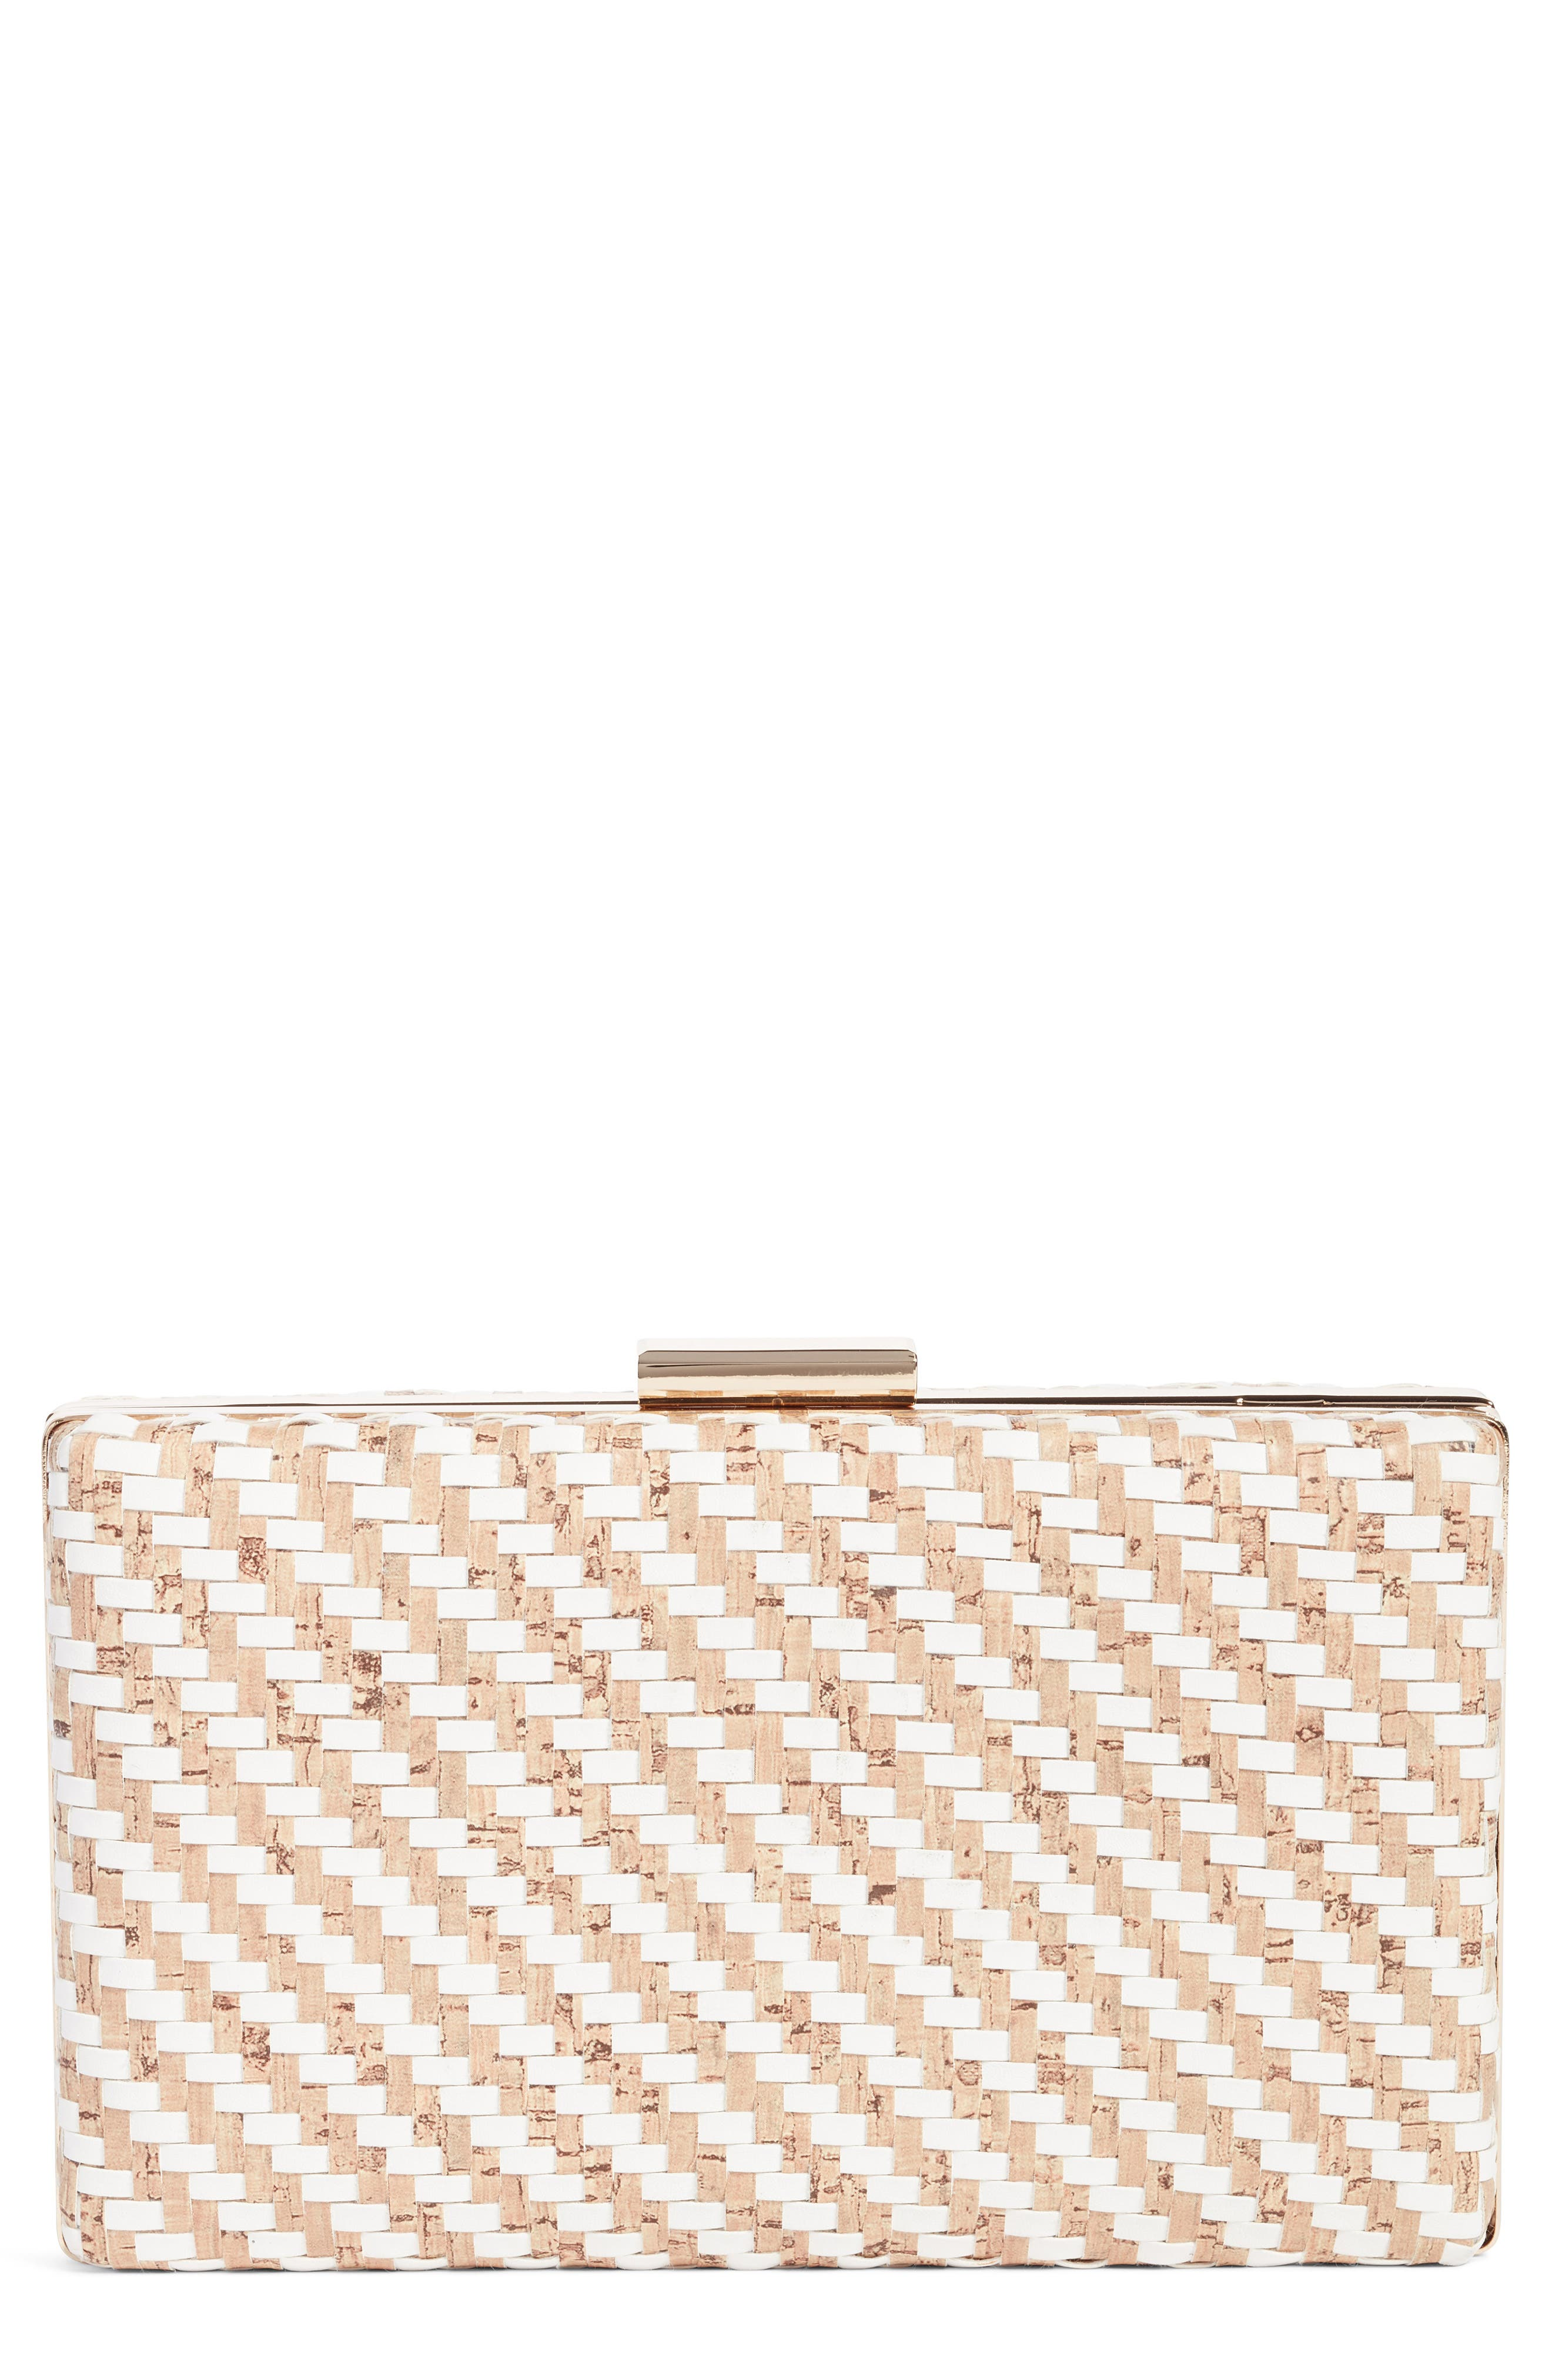 Nordstrom Woven Cork & Faux Leather Clutch